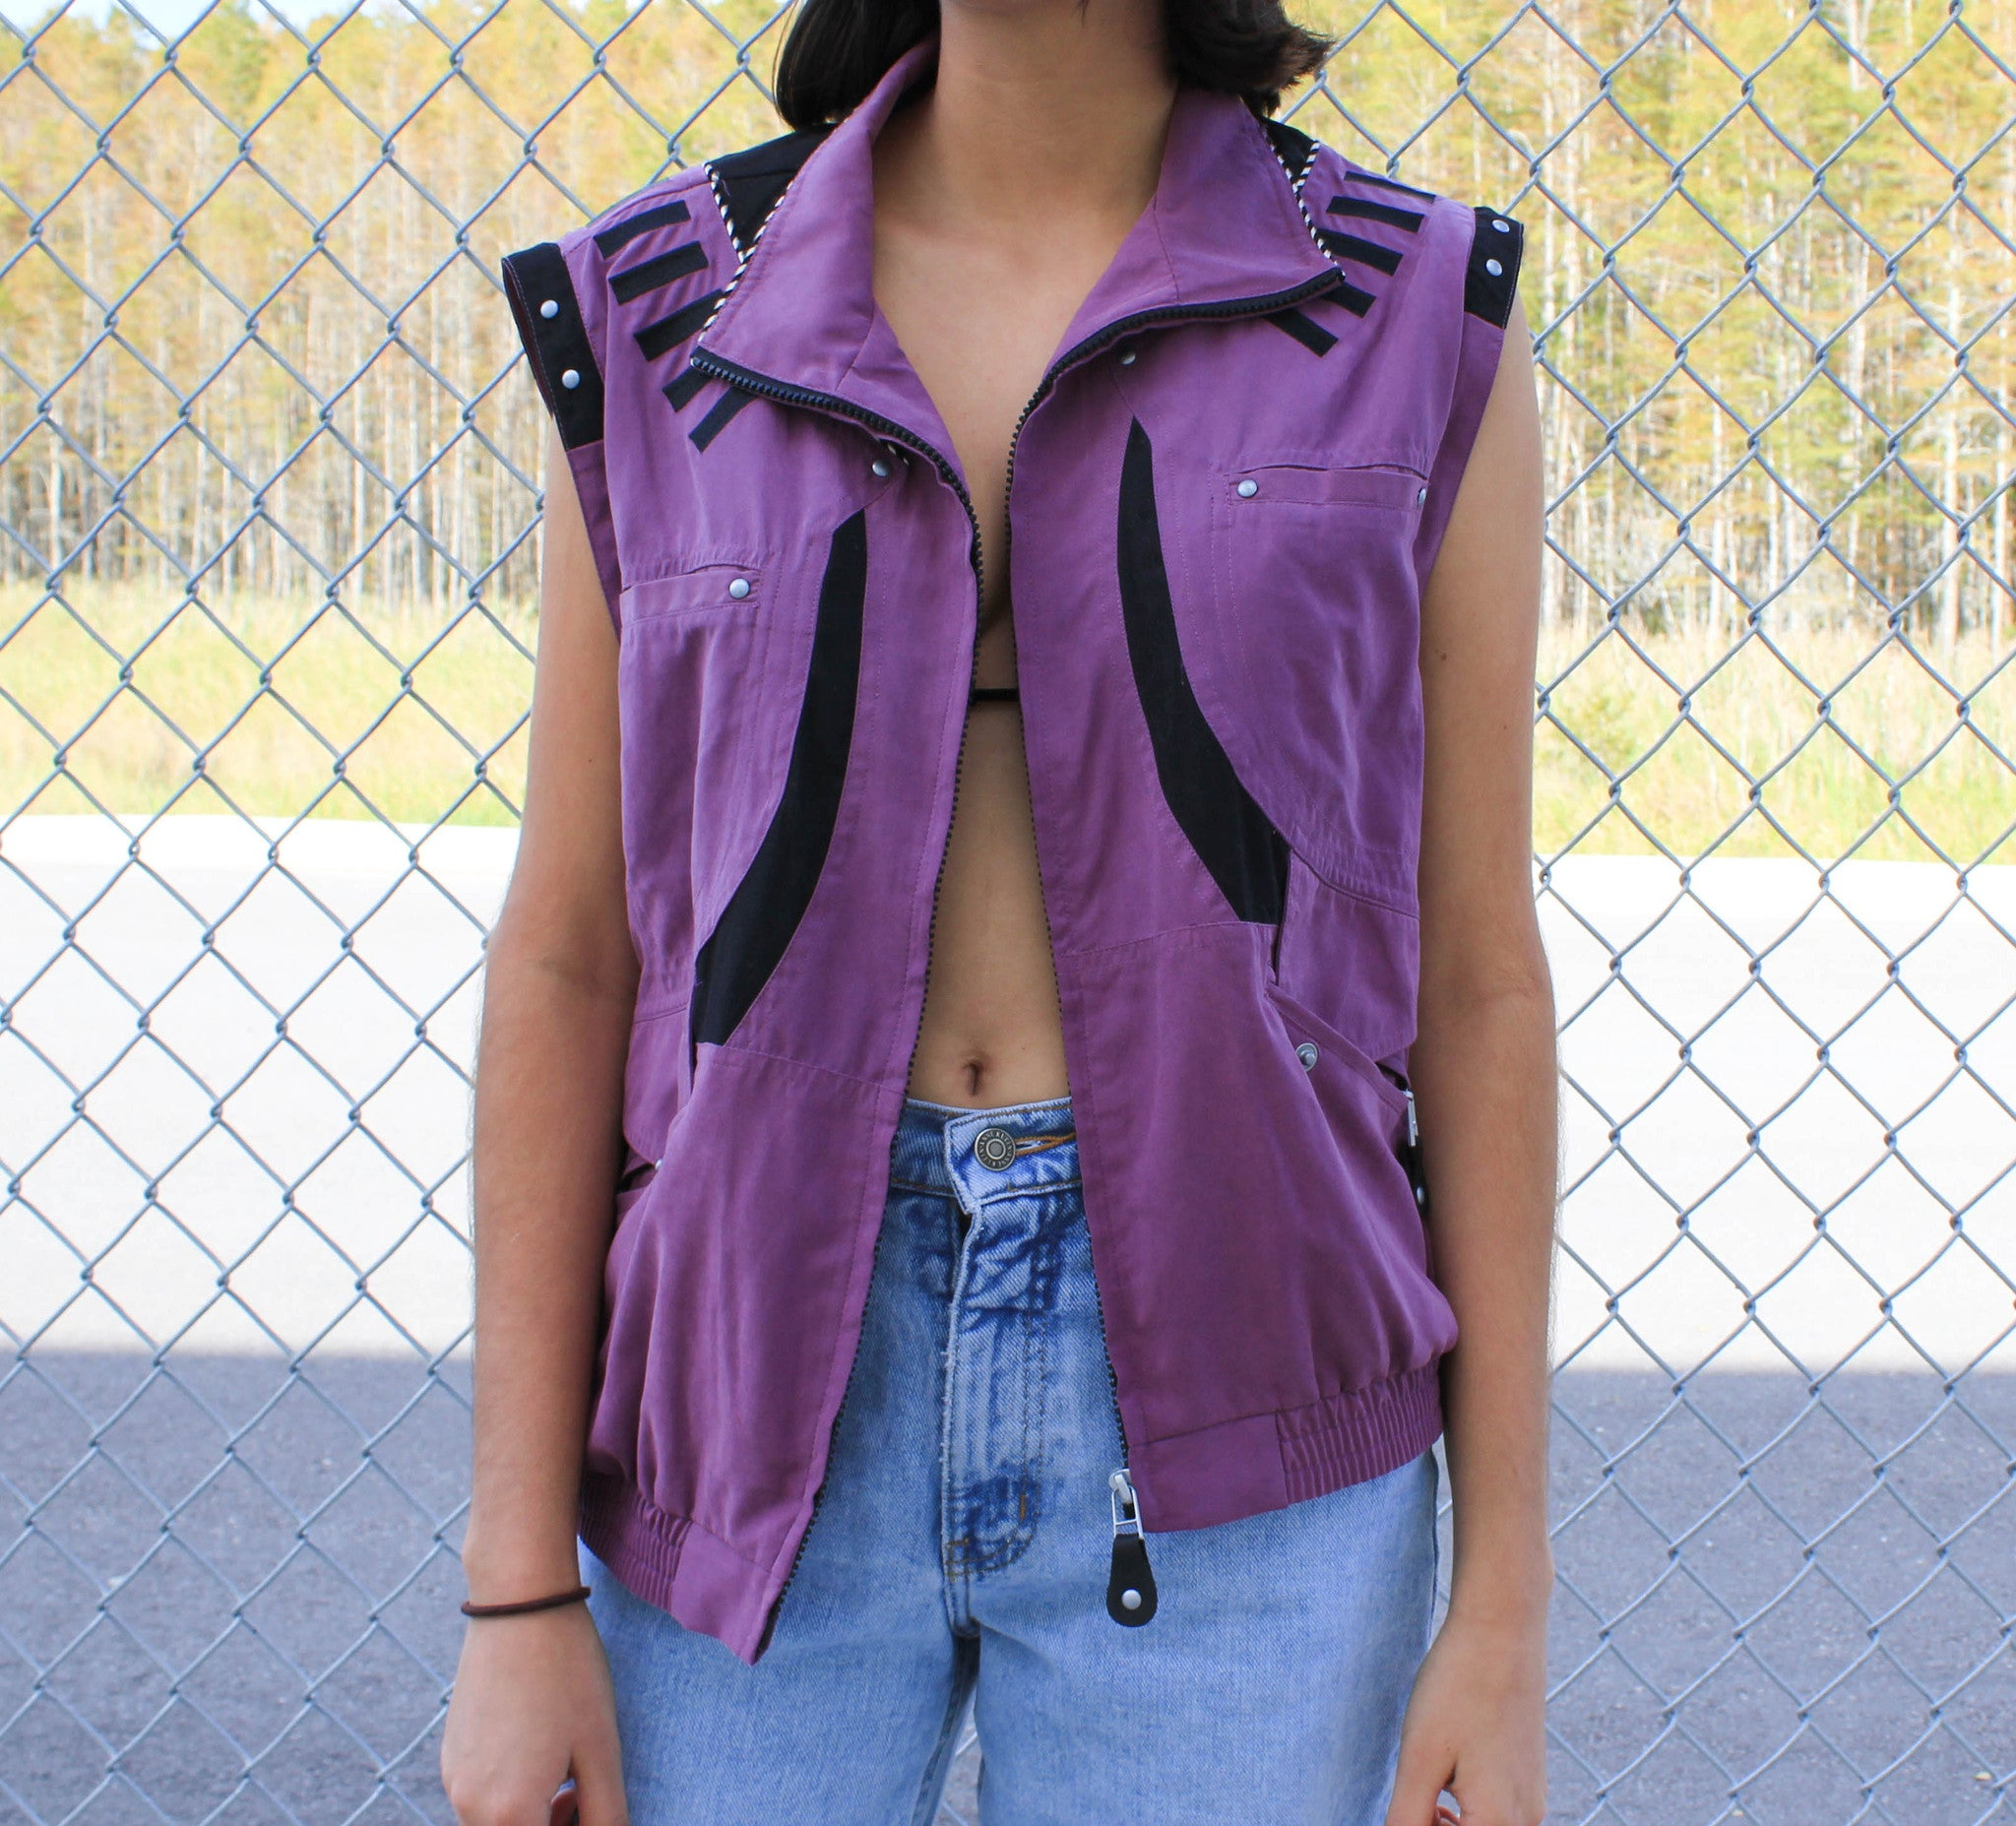 Purple Jacket/Vest